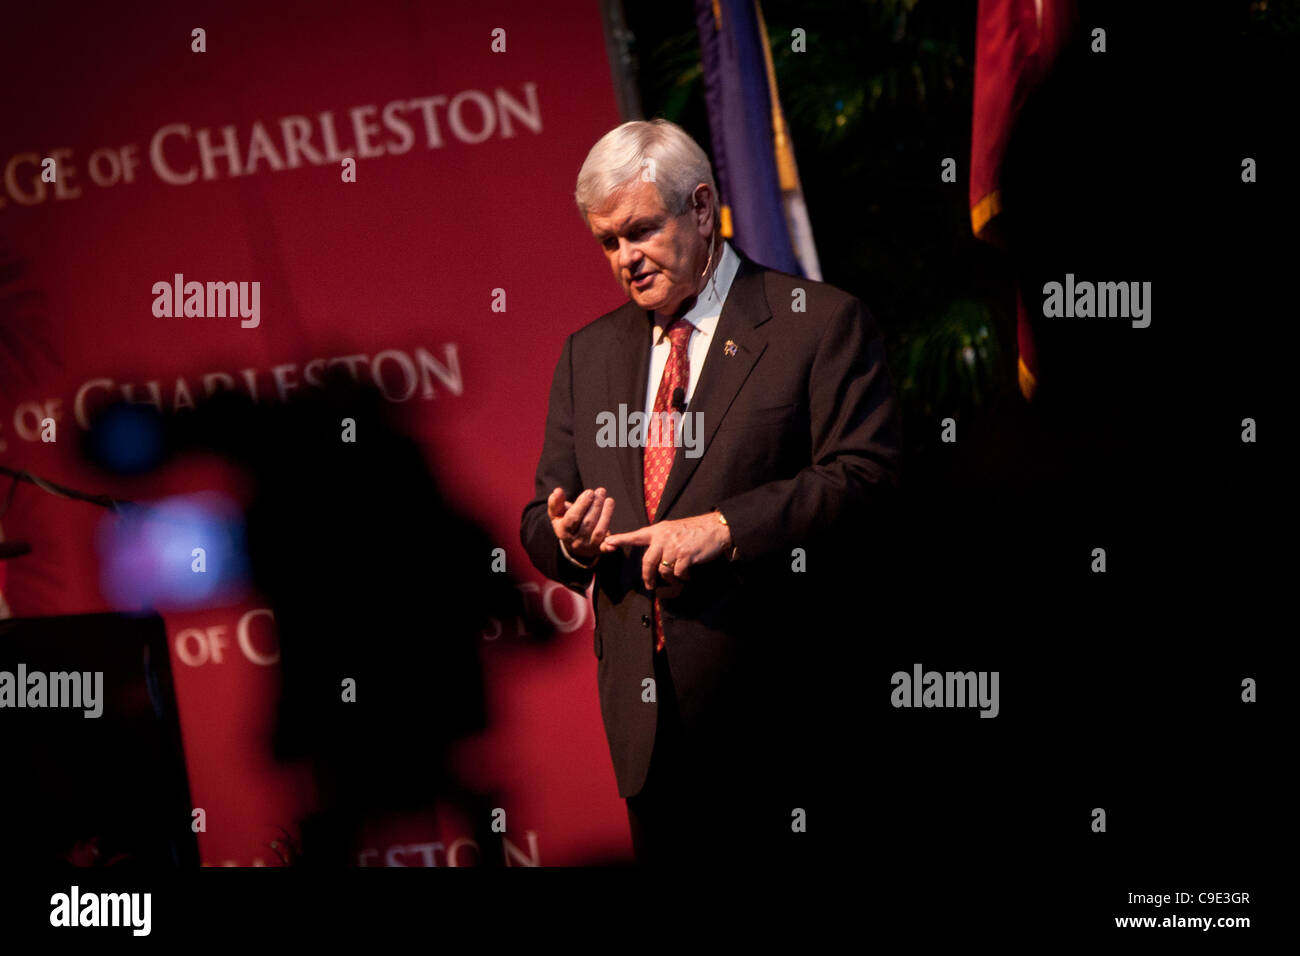 Republican presidential candidate Newt Gingrich at a townhall meeting at the College of Charleston on November 28, - Stock Image